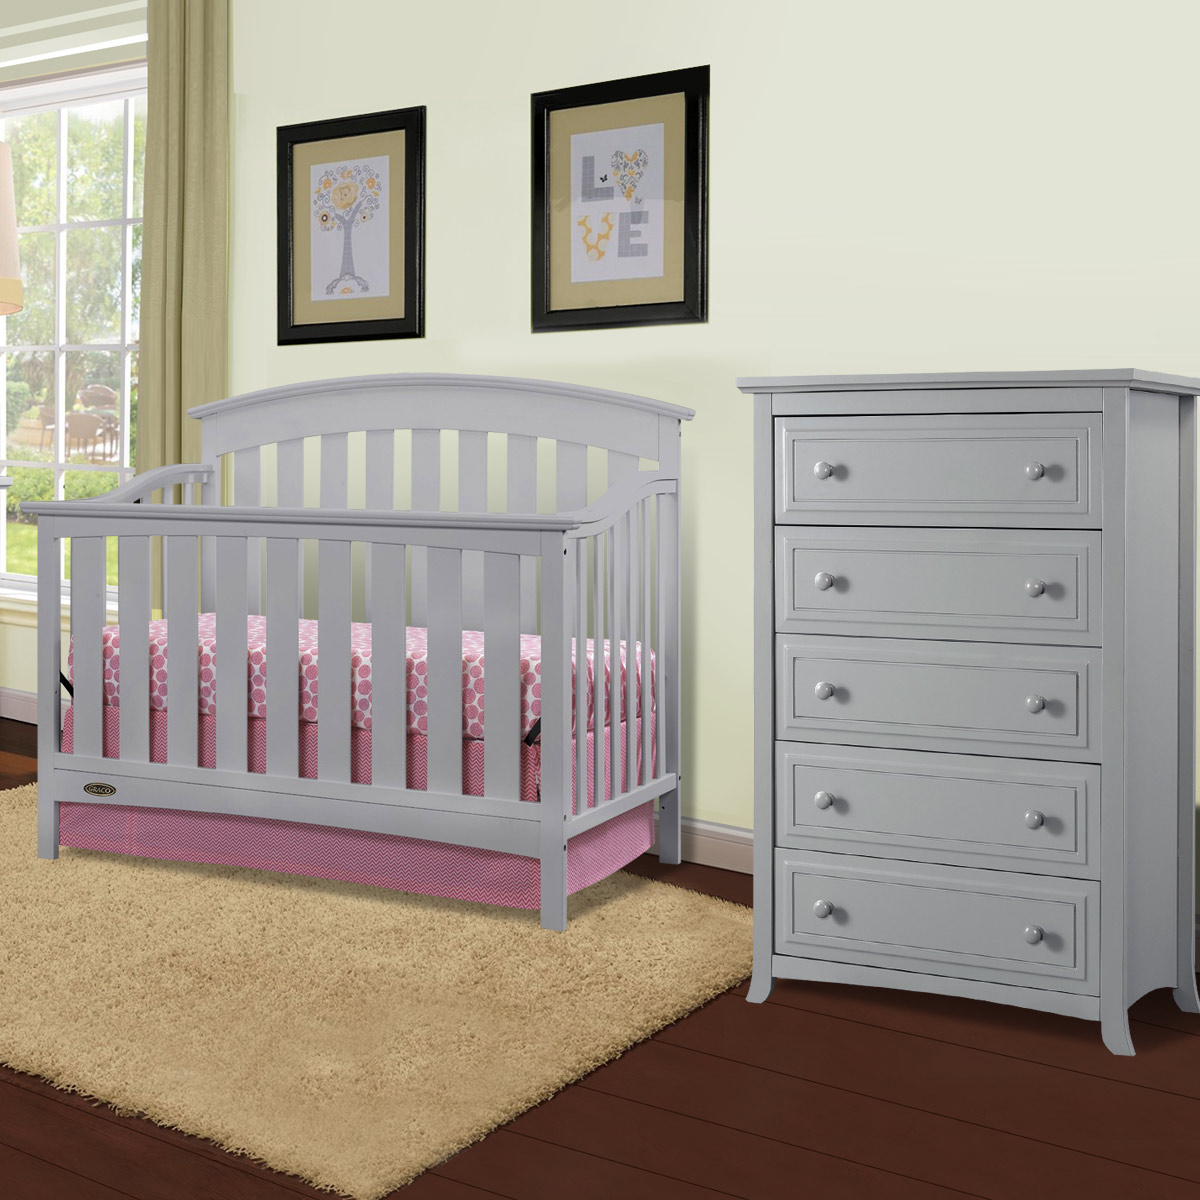 Graco Cribs Arlington 2 Piece Nursery Set Convertible Crib And